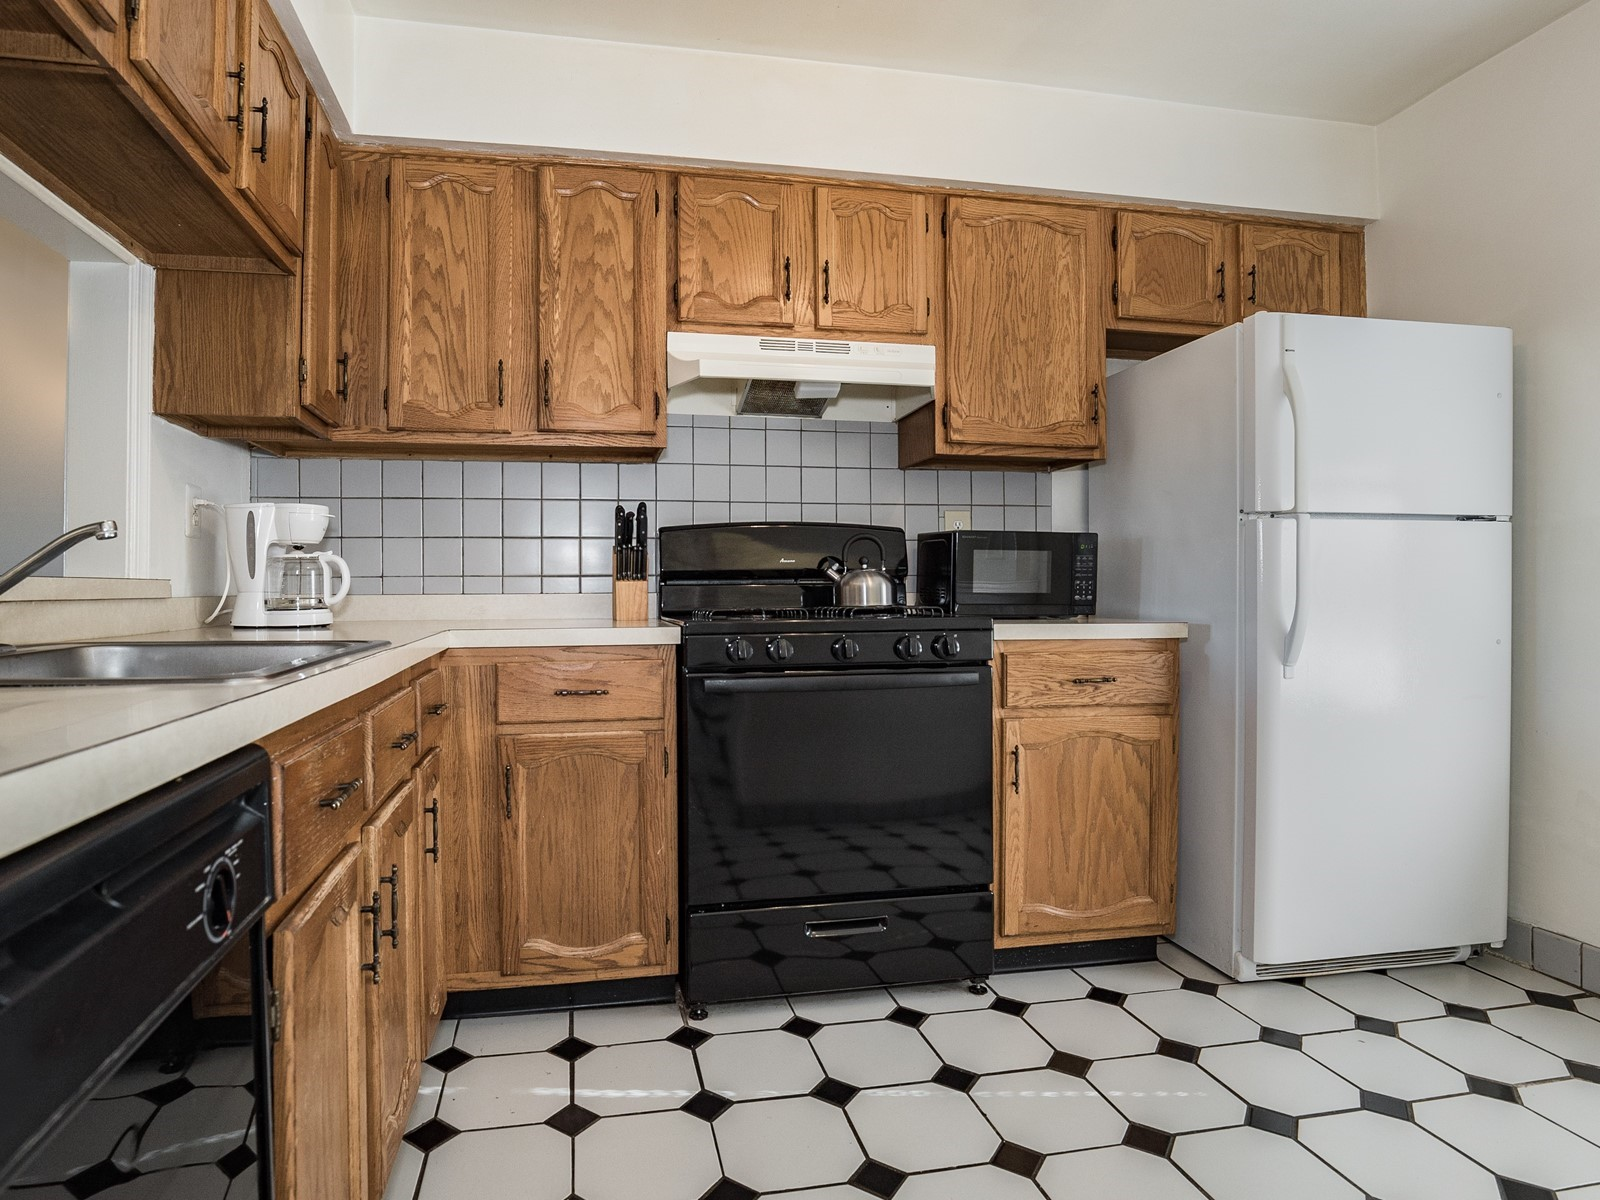 Woodbridge 404 Furnished Apartment with fridge, oven, stove and microwave